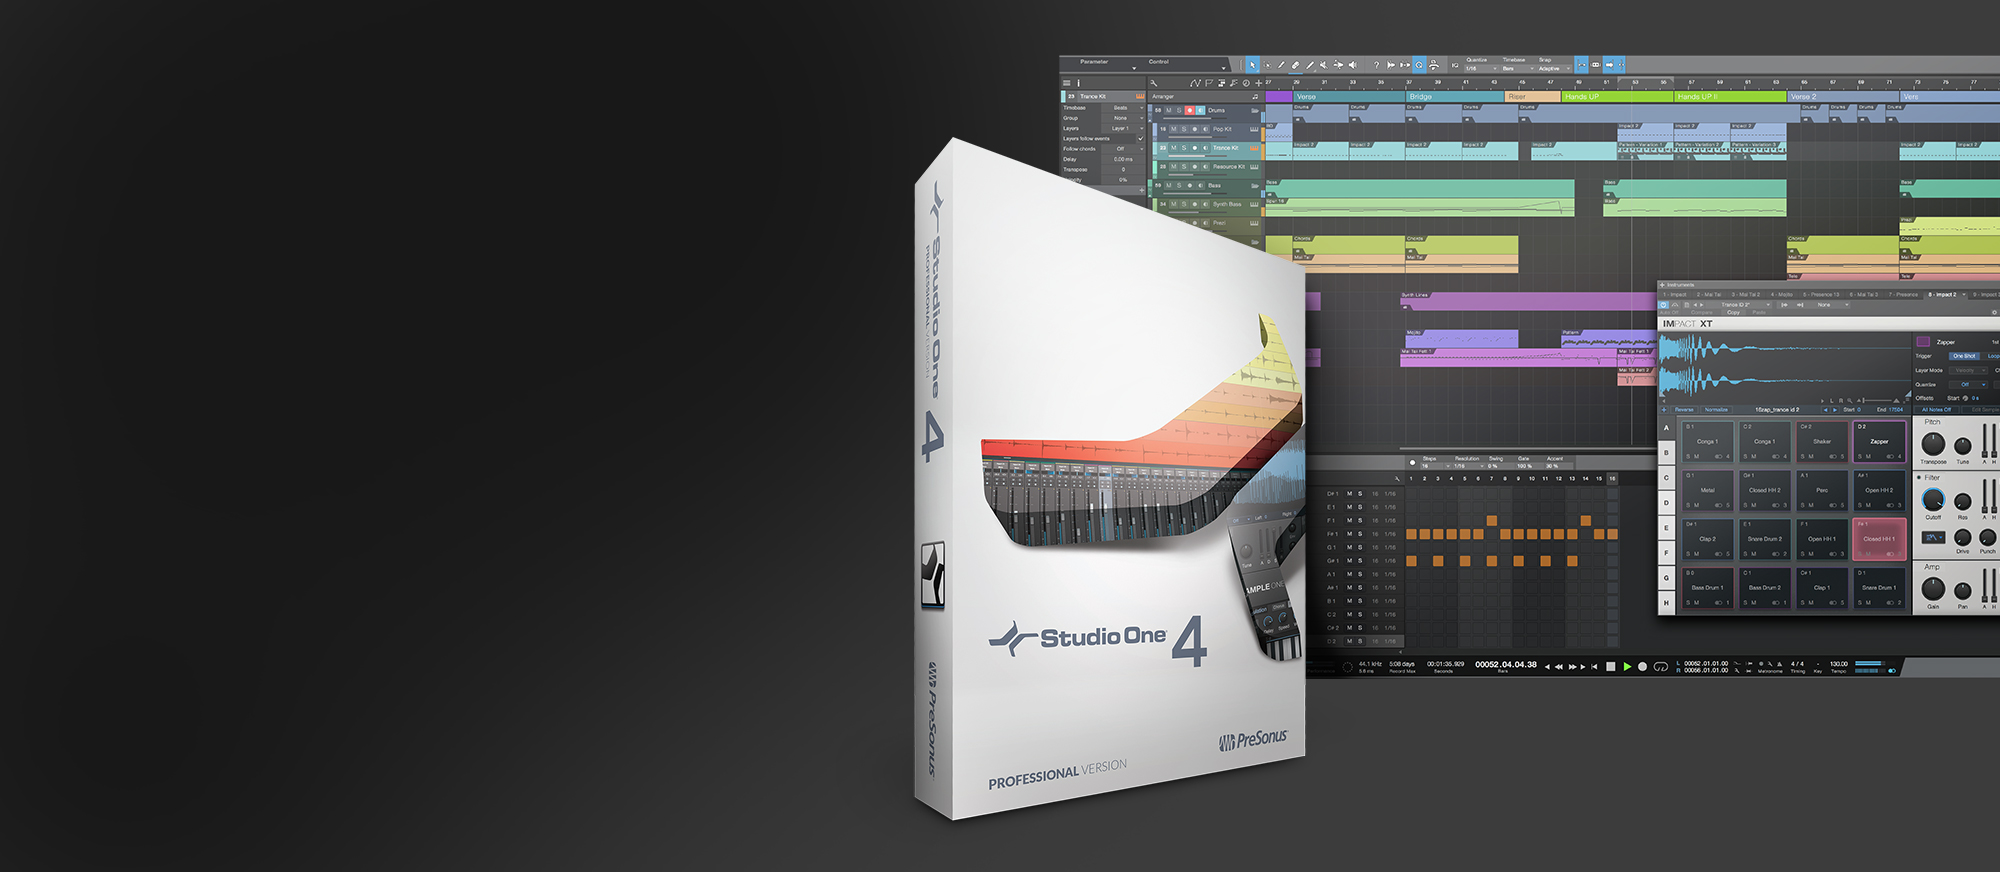 Studio One 4 box art